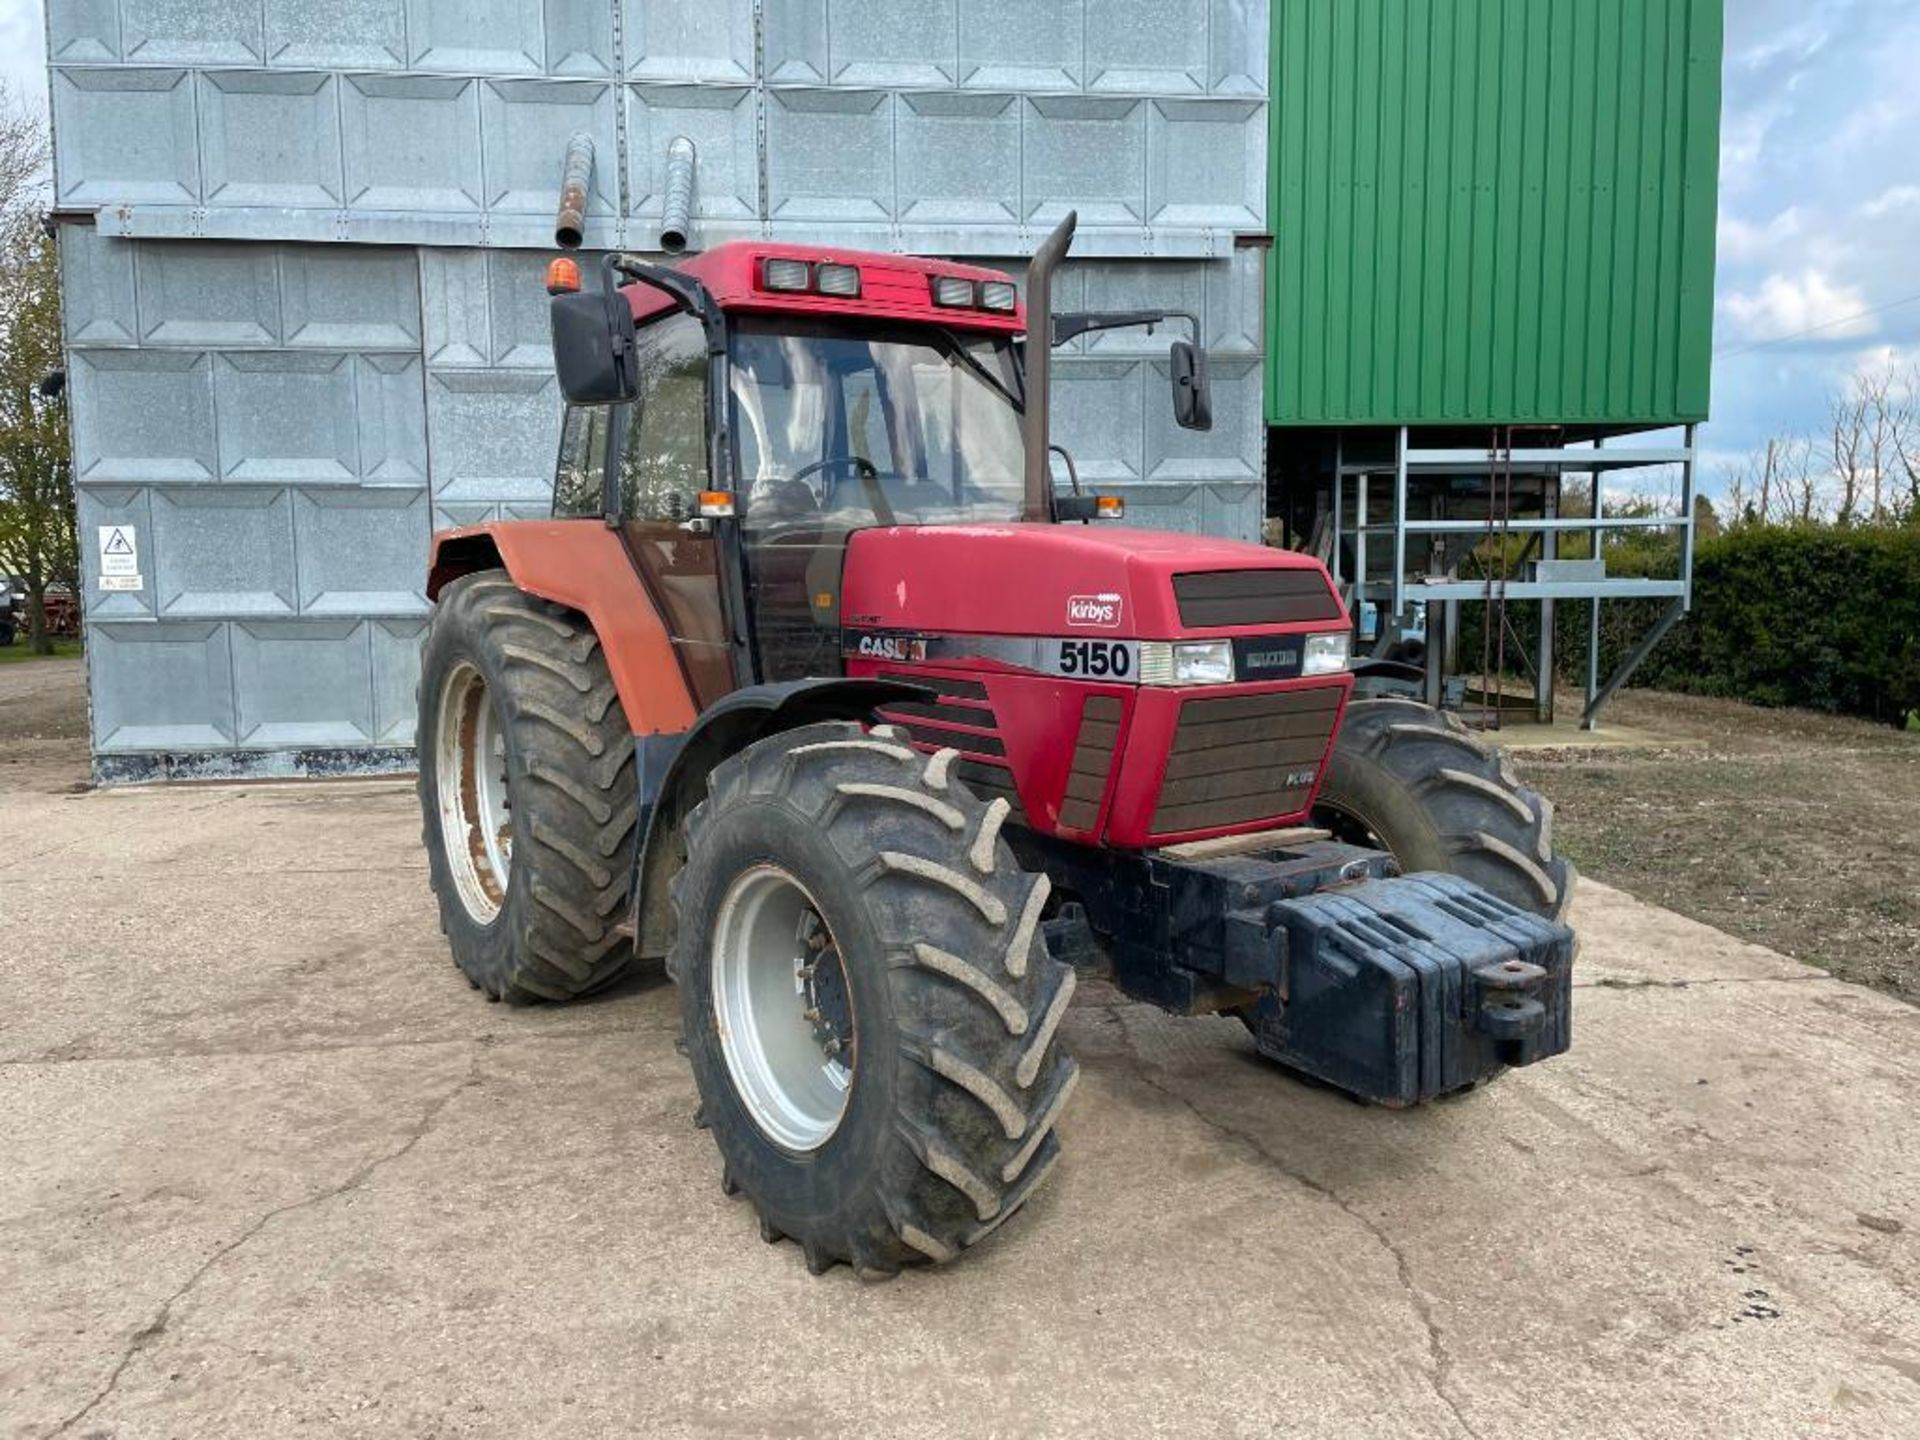 1997 Case IH 5150 Maxxum Plus Powershift 4wd tractor with 2 spools, PUH and front wafer weights on 1 - Image 6 of 13